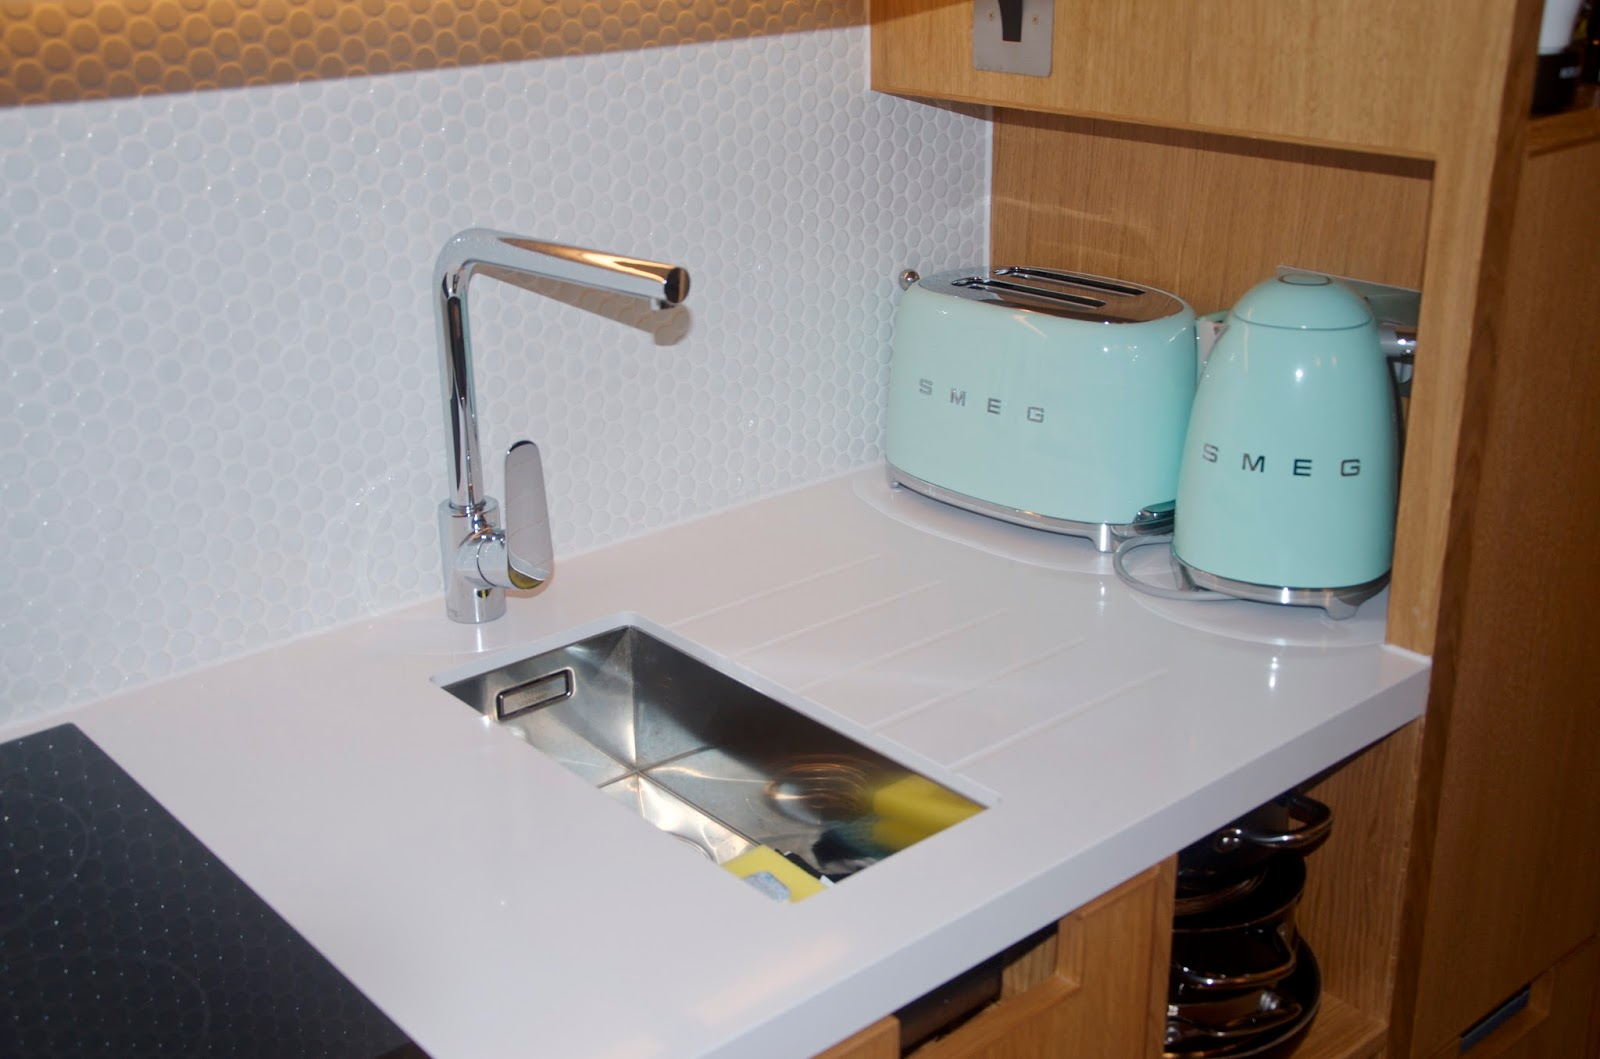 Wilde Aparthotels by Staycity kitchenette with Smeg green appliances